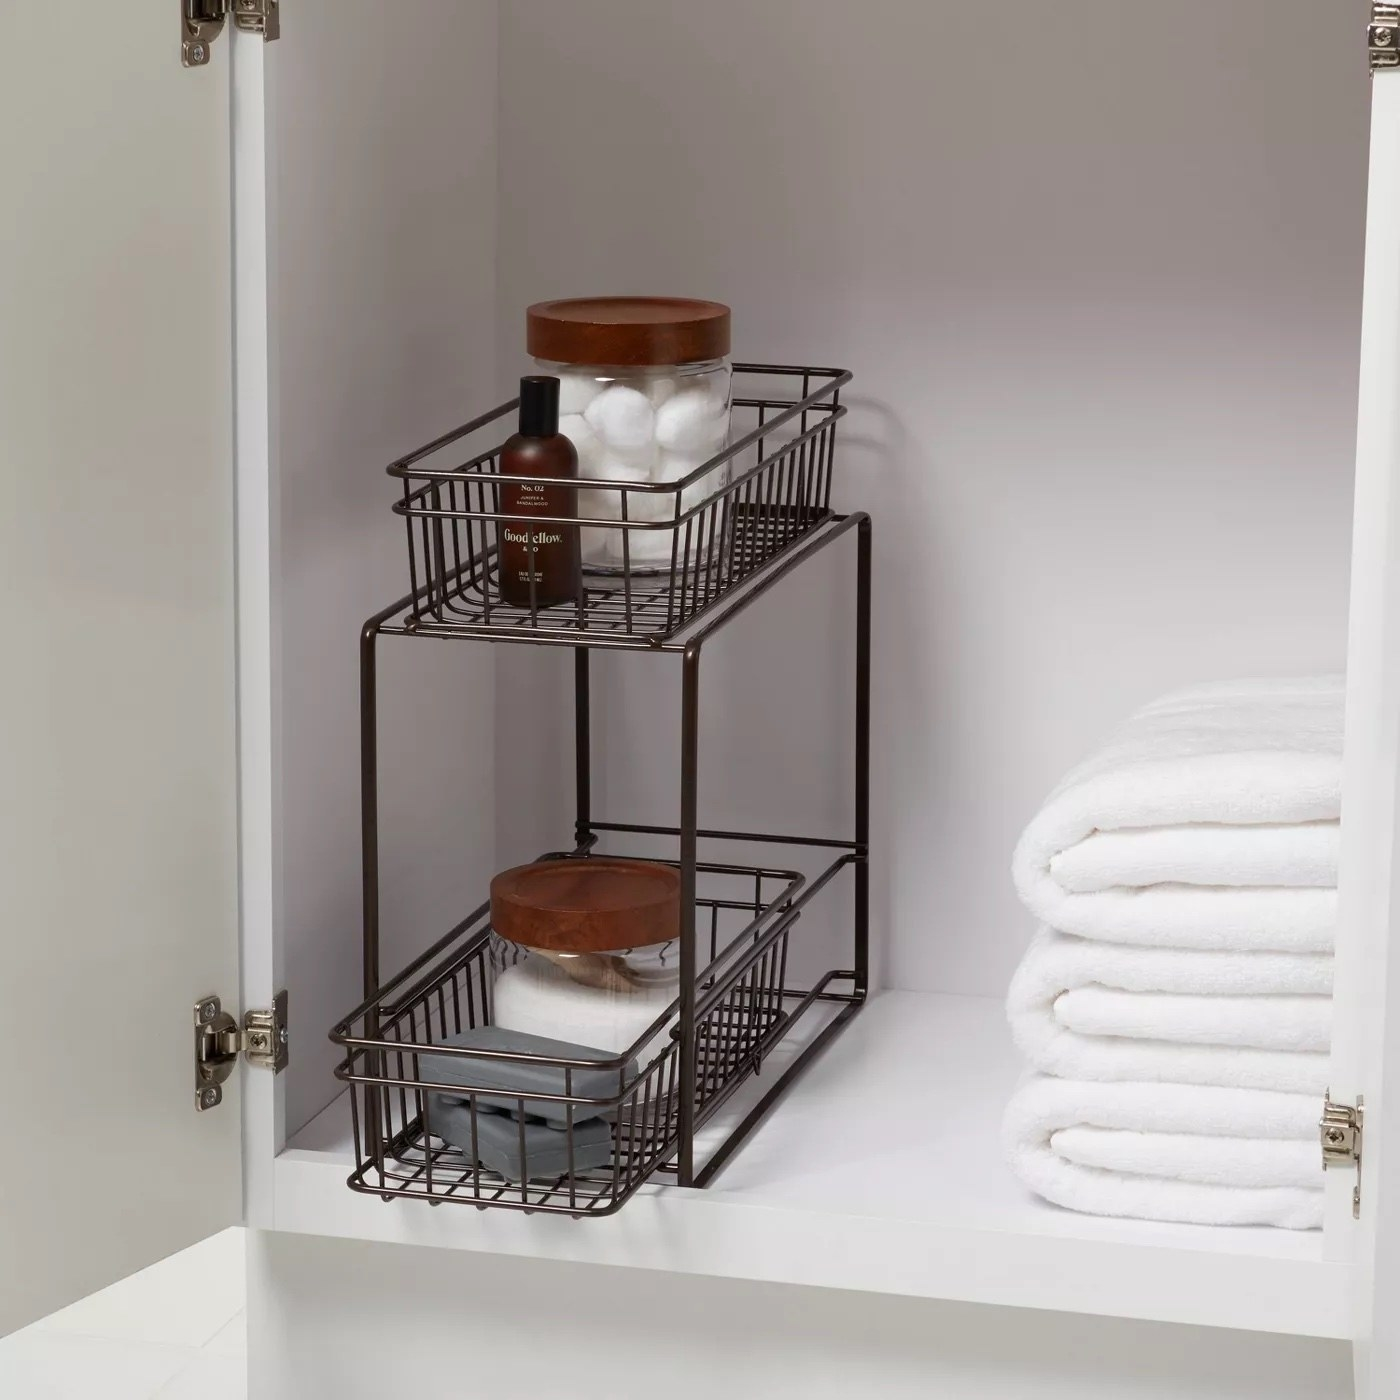 The two tier storage rack with assorted items inside